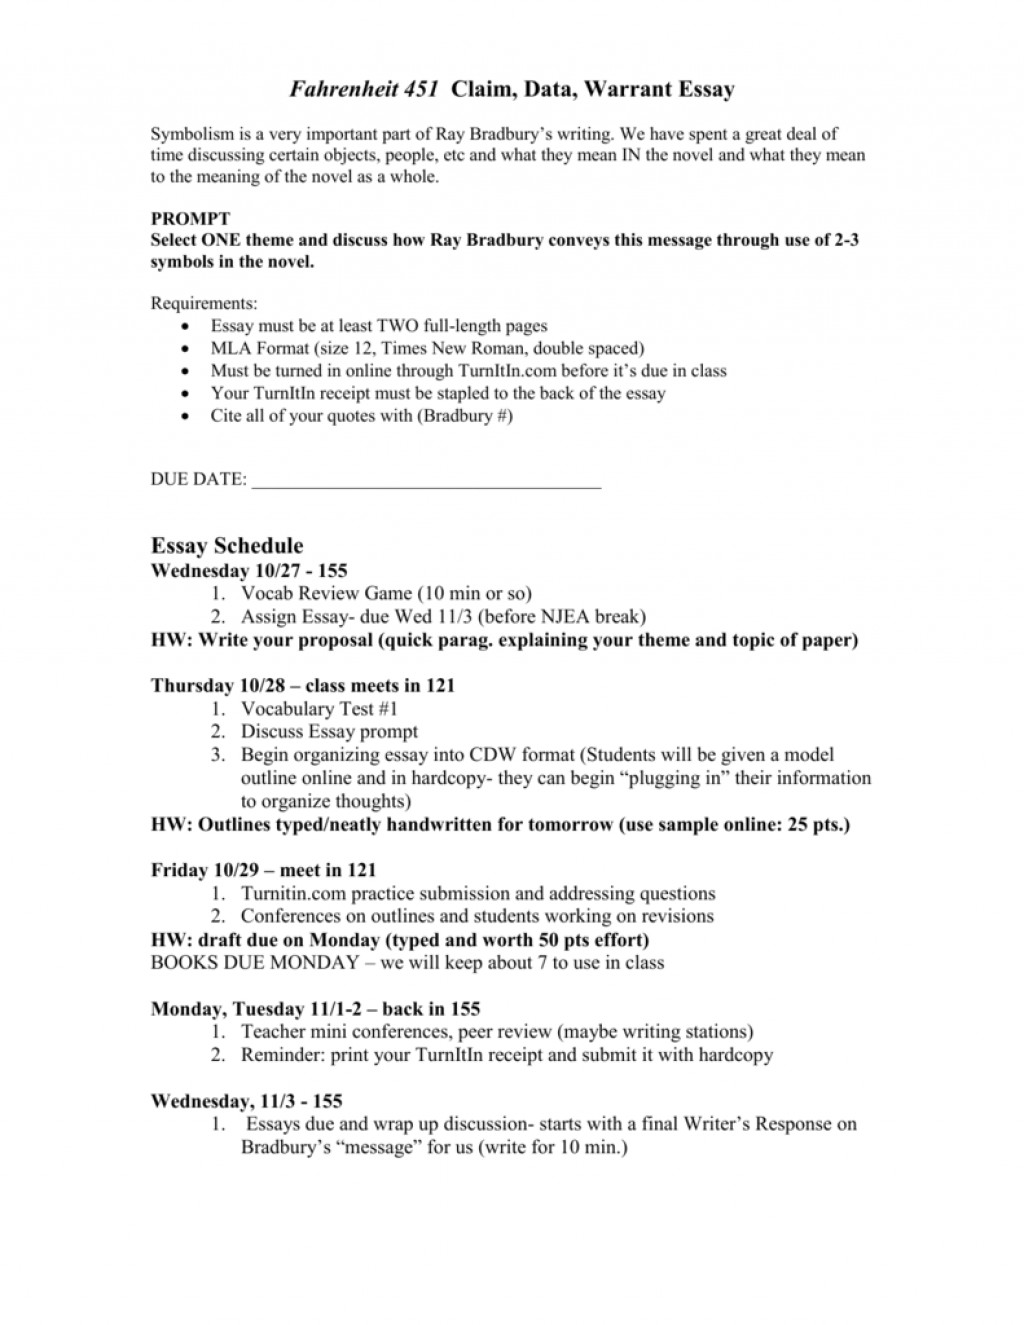 005 Essay Example Warrant 009035614 1 Singular Search Argumentative Large